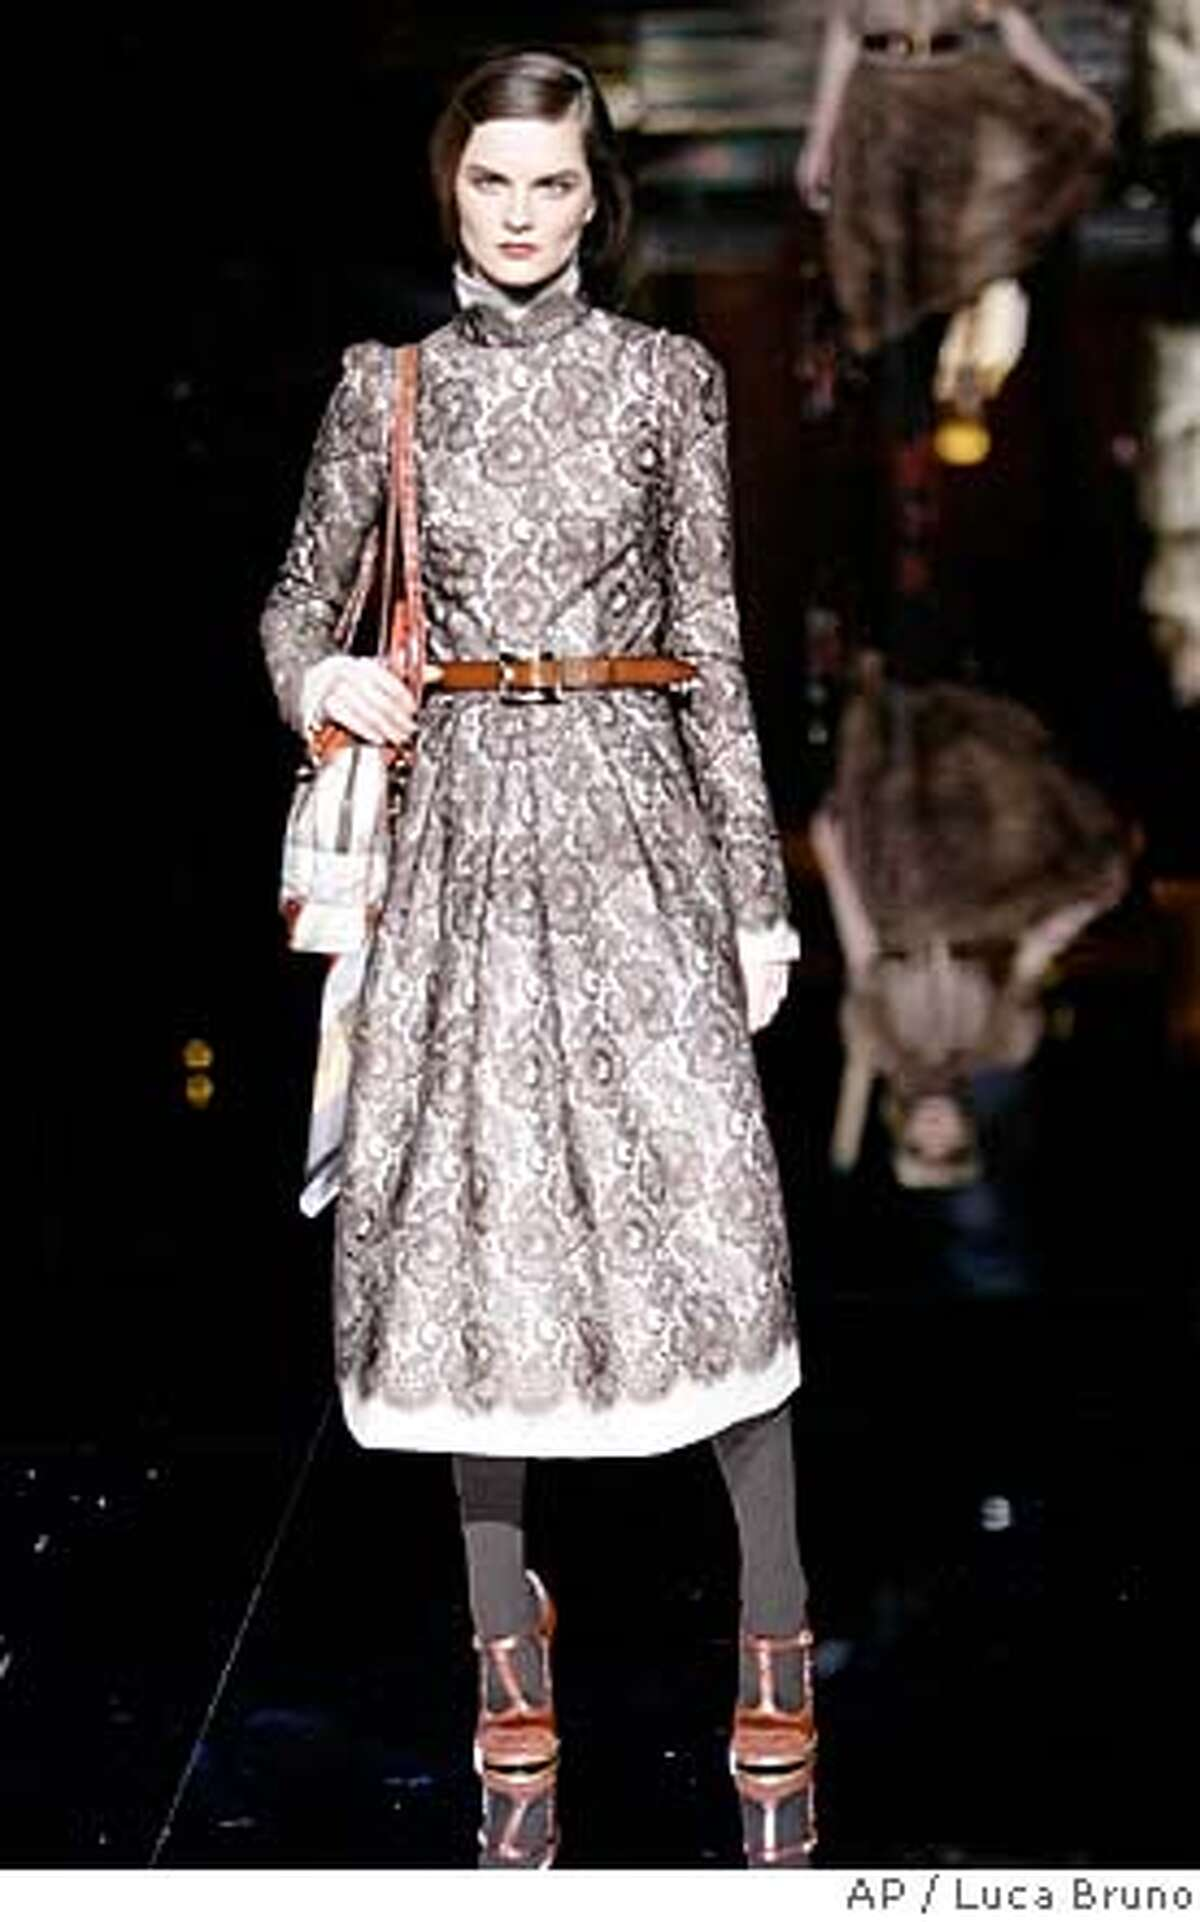 A model wears a creation part of the Dolce & Gabbana women's Fall/Winter 2008/2009 collection presented in Milan, Italy, Thursday, Feb. 21, 2008. (AP Photo/Luca Bruno)